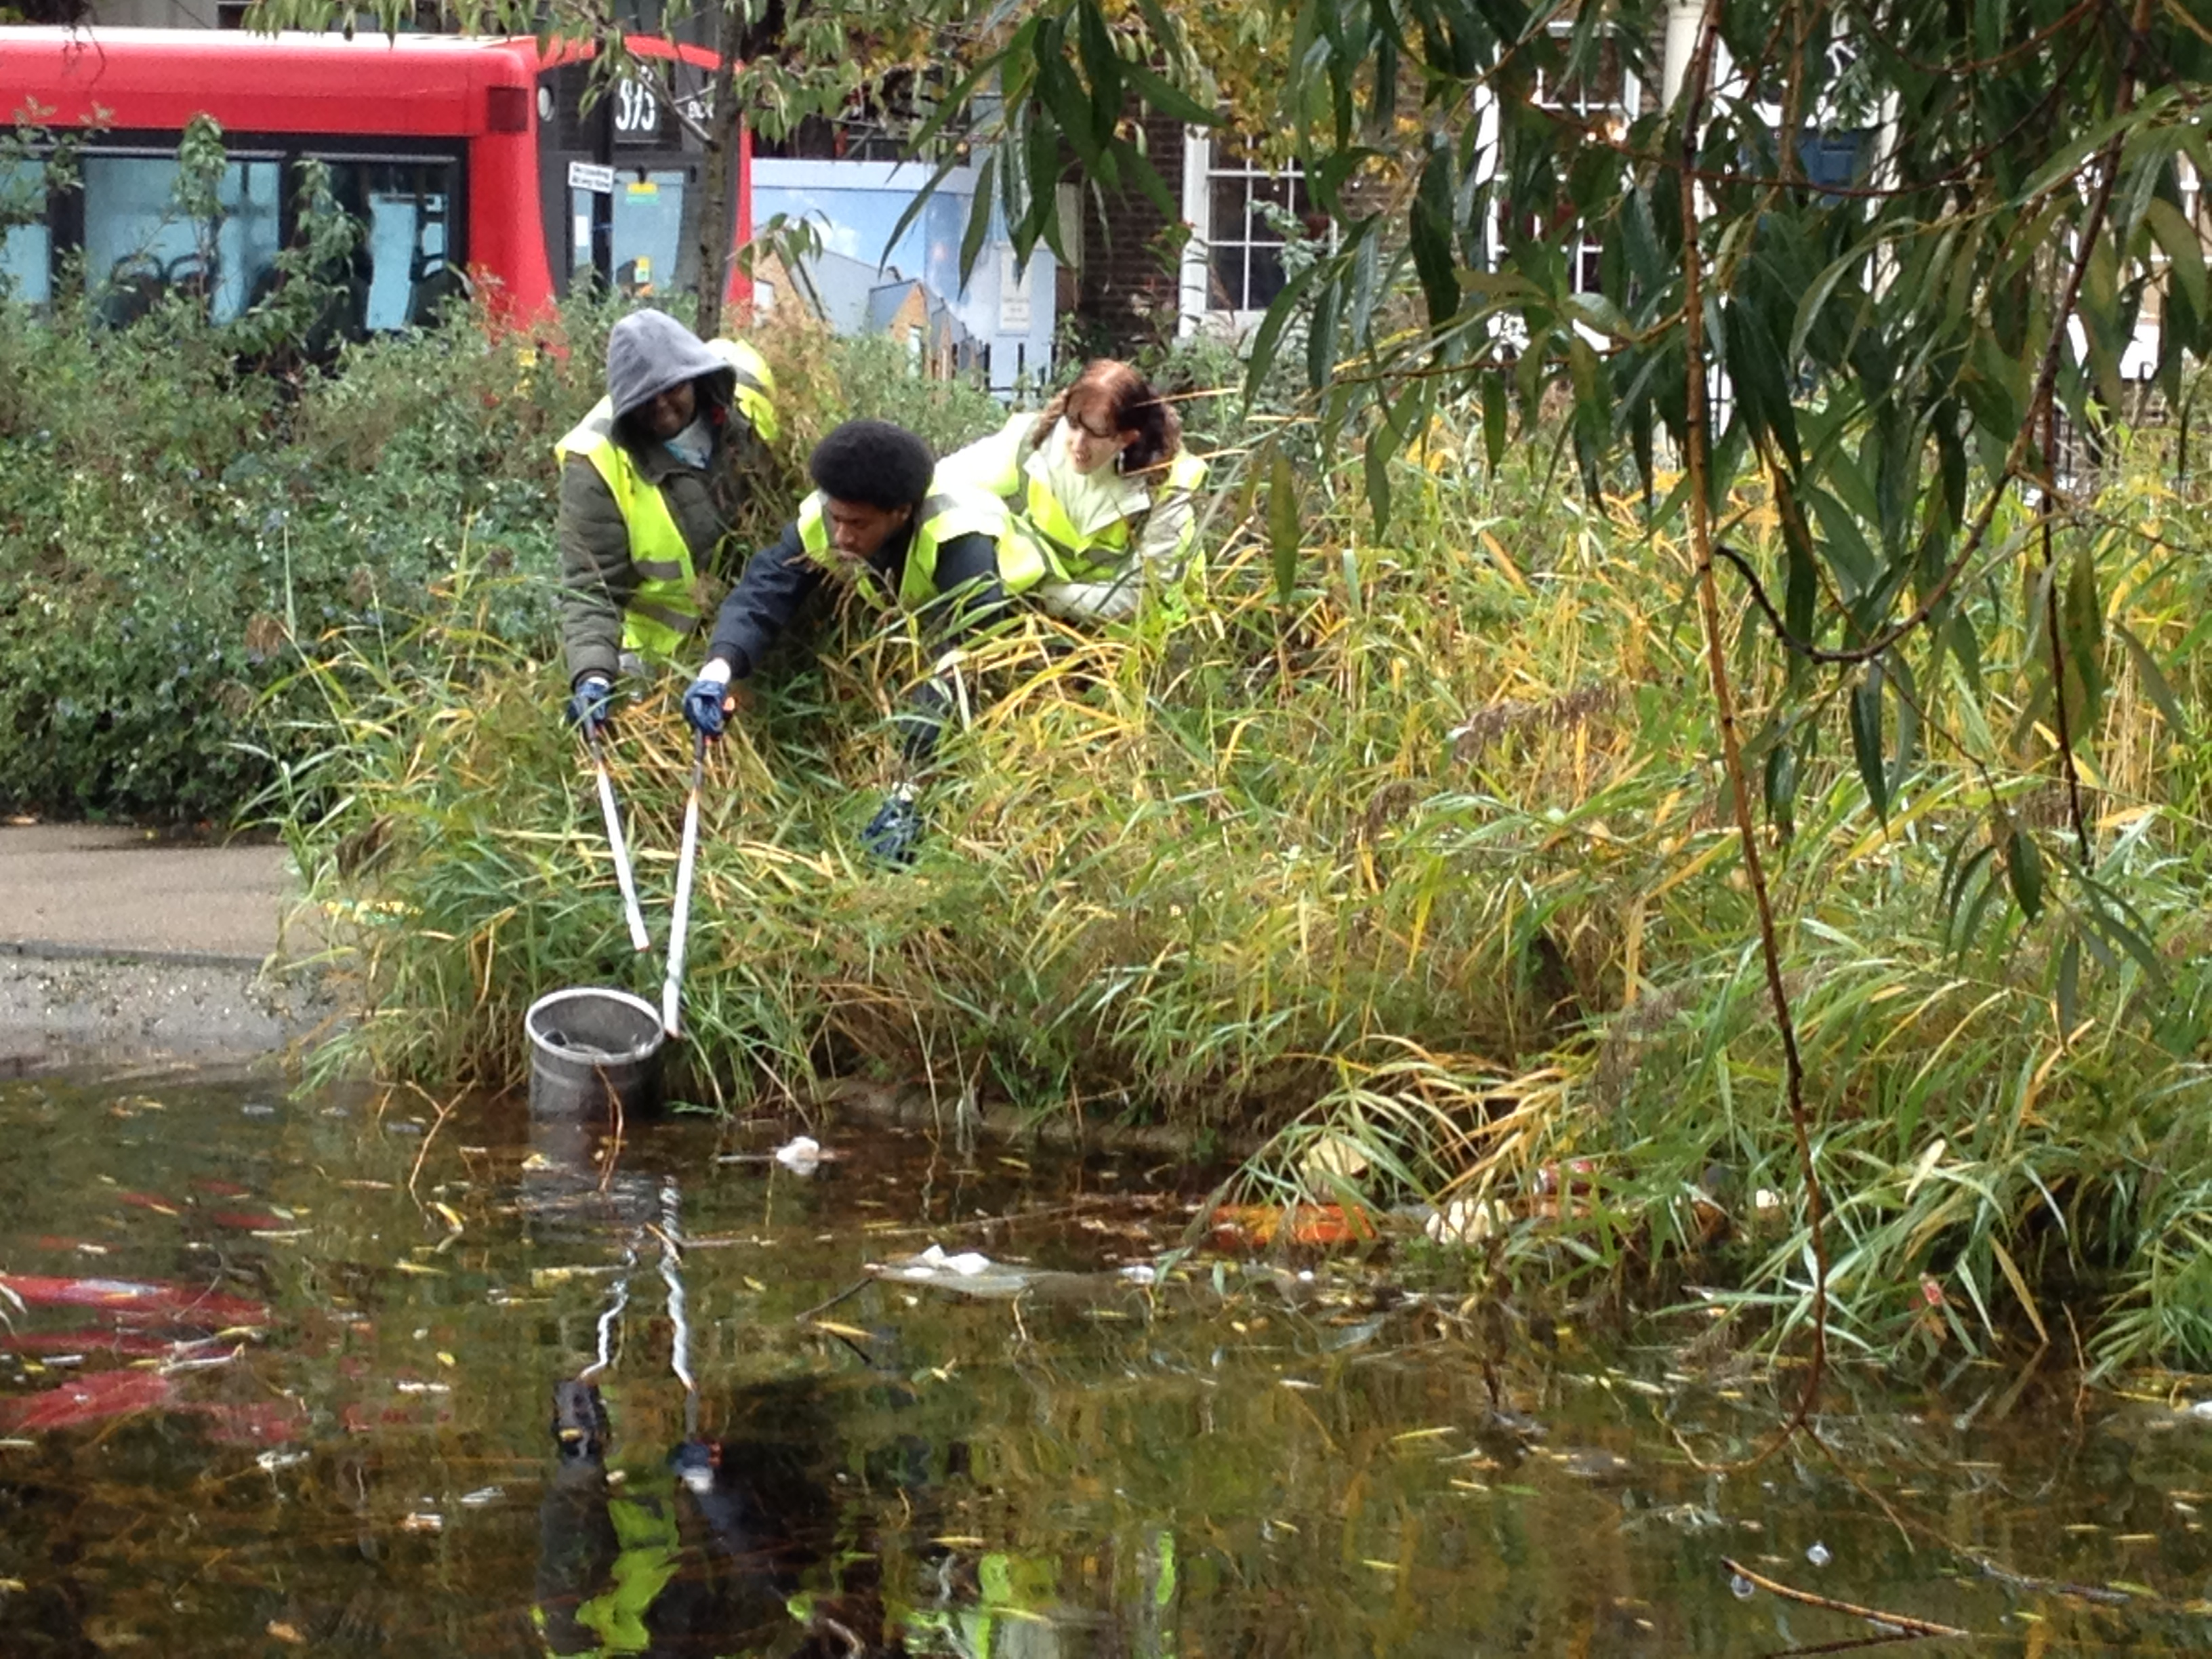 Students clean up Clapton pond. Photo: Nassos Stylianou